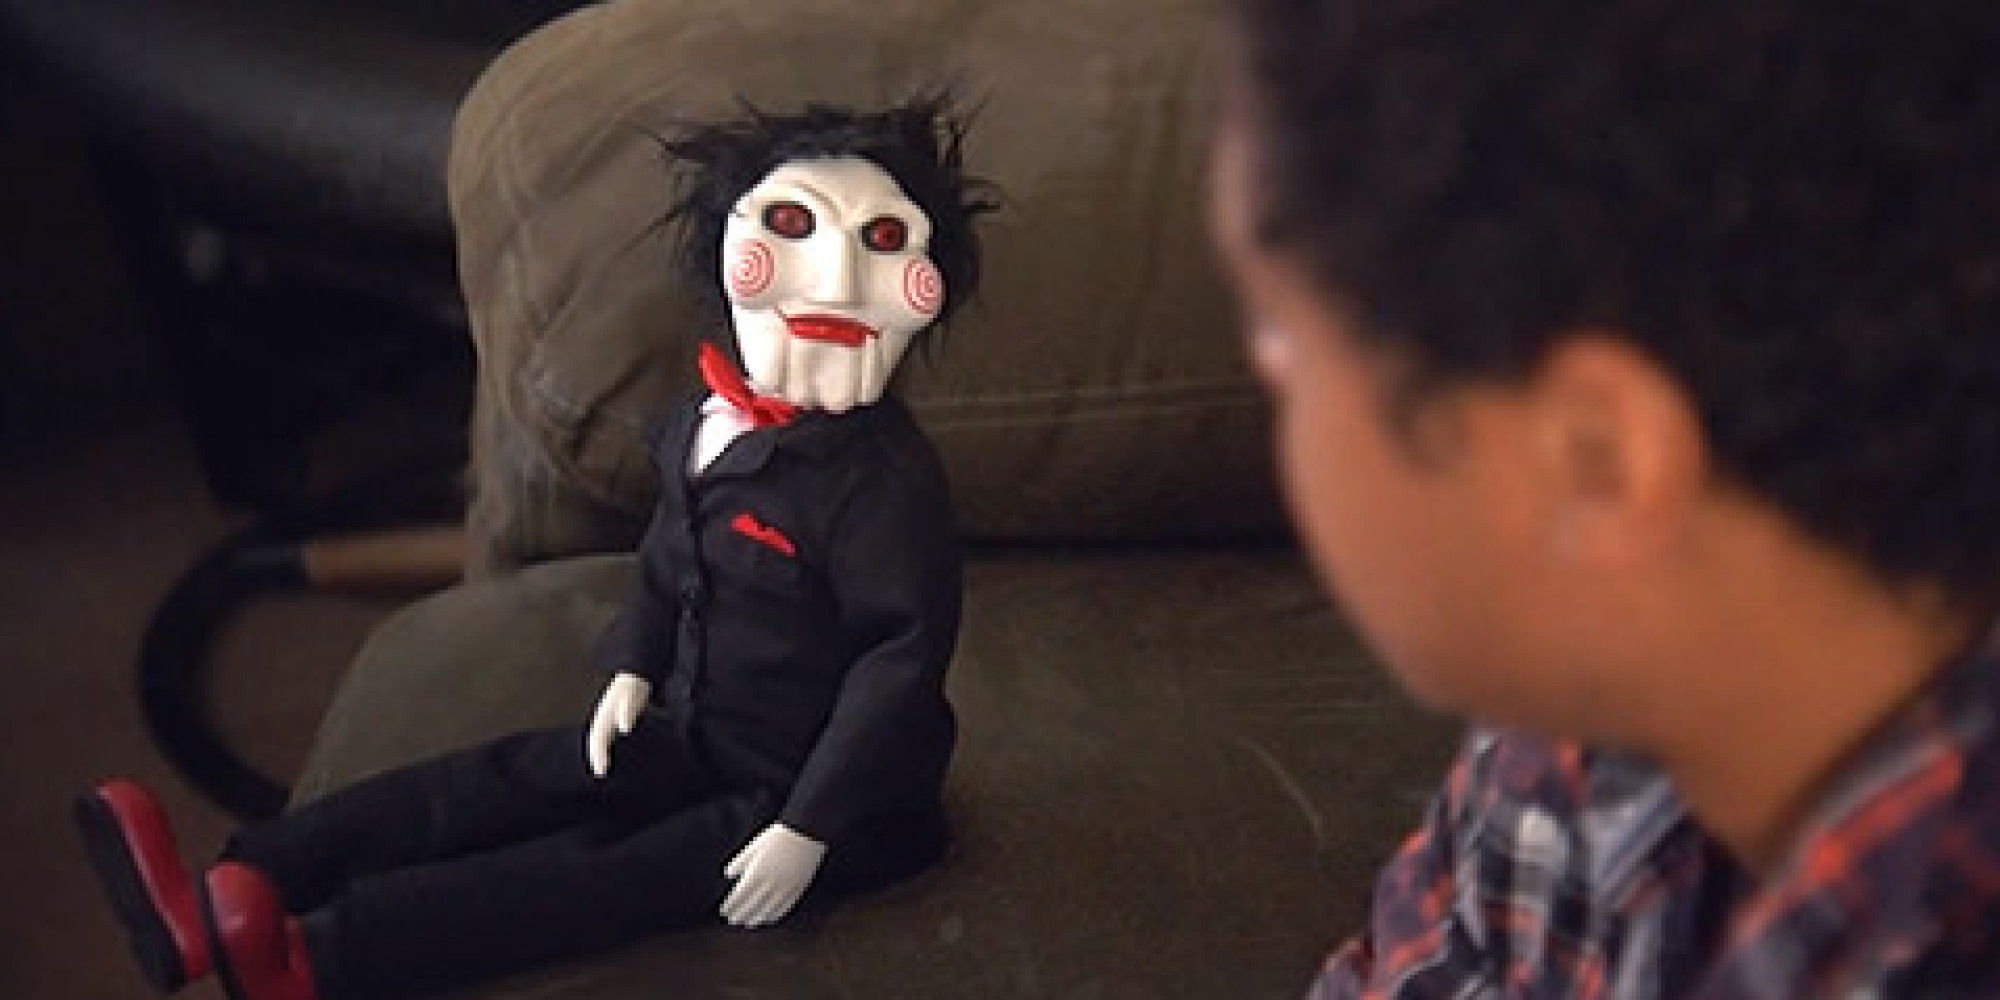 Jigsaw From 'Saw' Is The Worst Roommate EVER